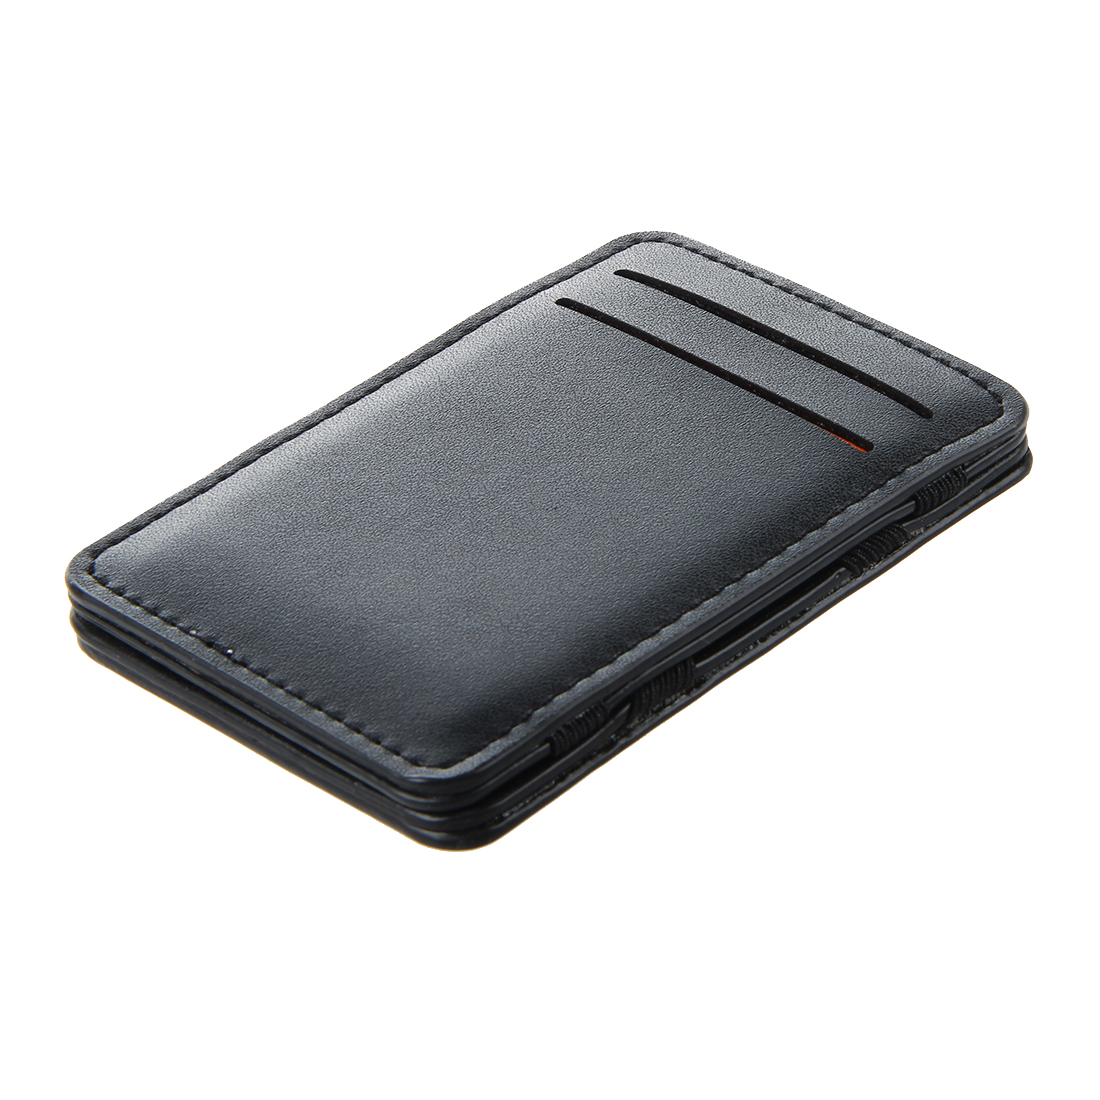 Mens-Magic-Flip-Wallet-Money-Clip-Bifold-Slim-Credit-Card-Holder-Purse-A7M7 thumbnail 3